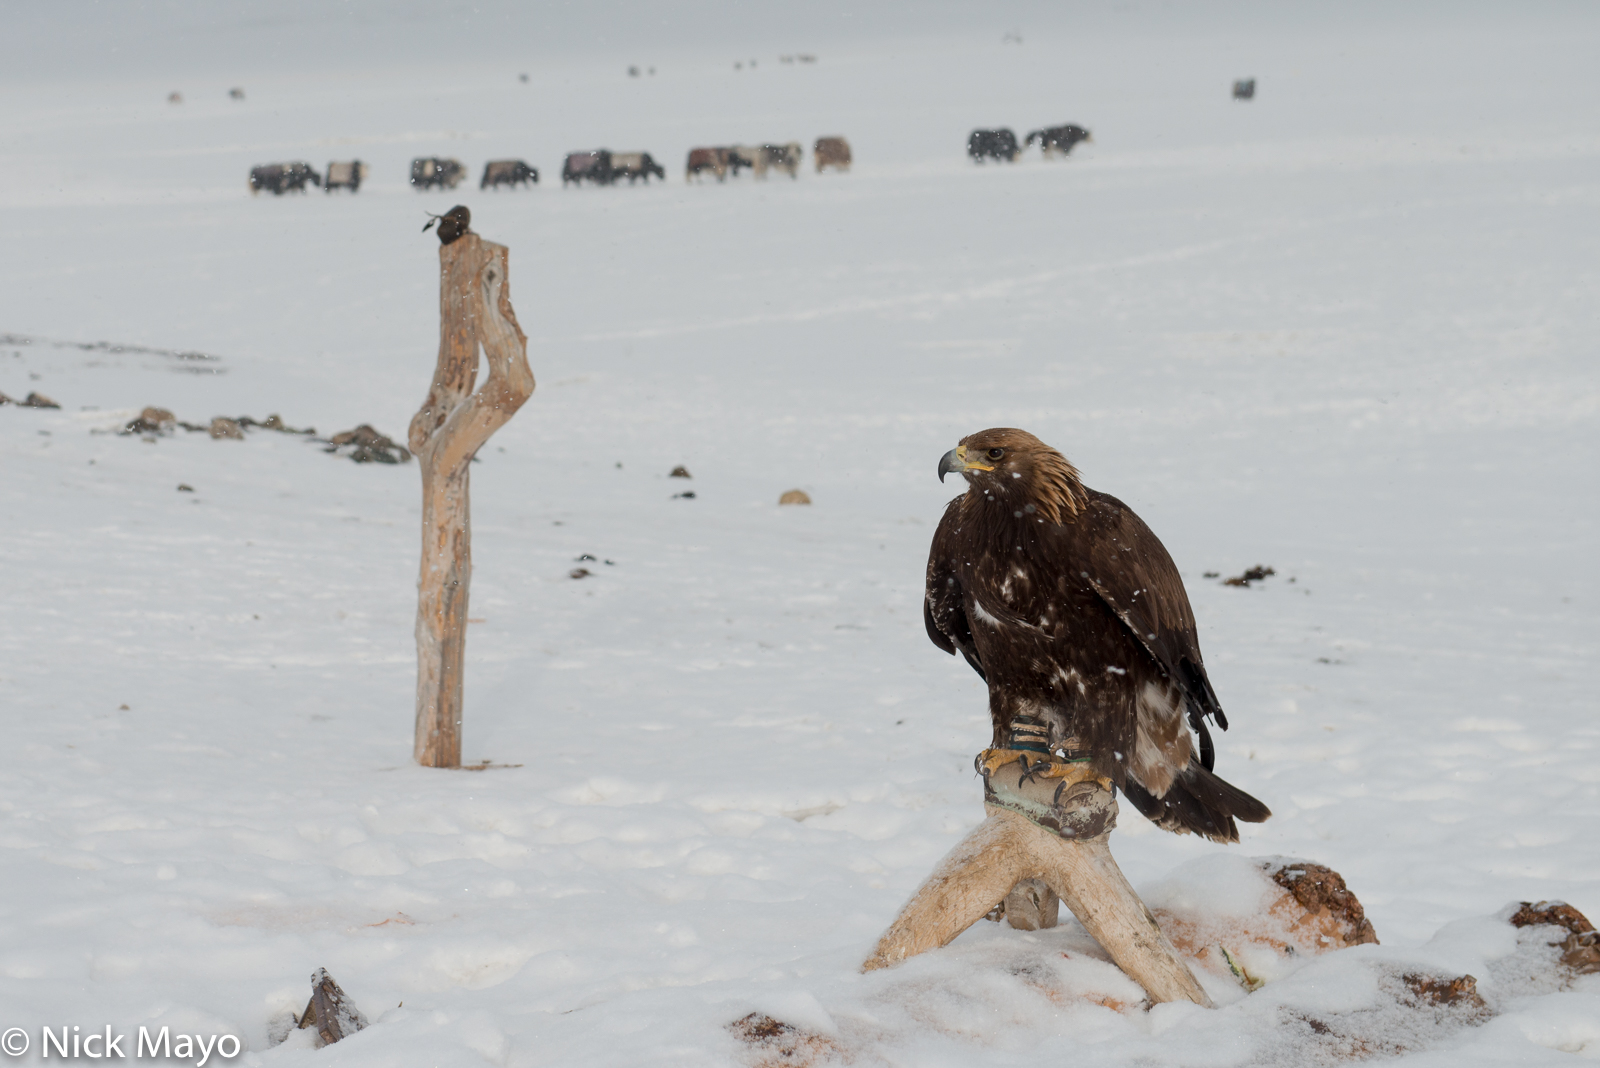 Bayan-Ölgii, Eagle, Mongolia, photo